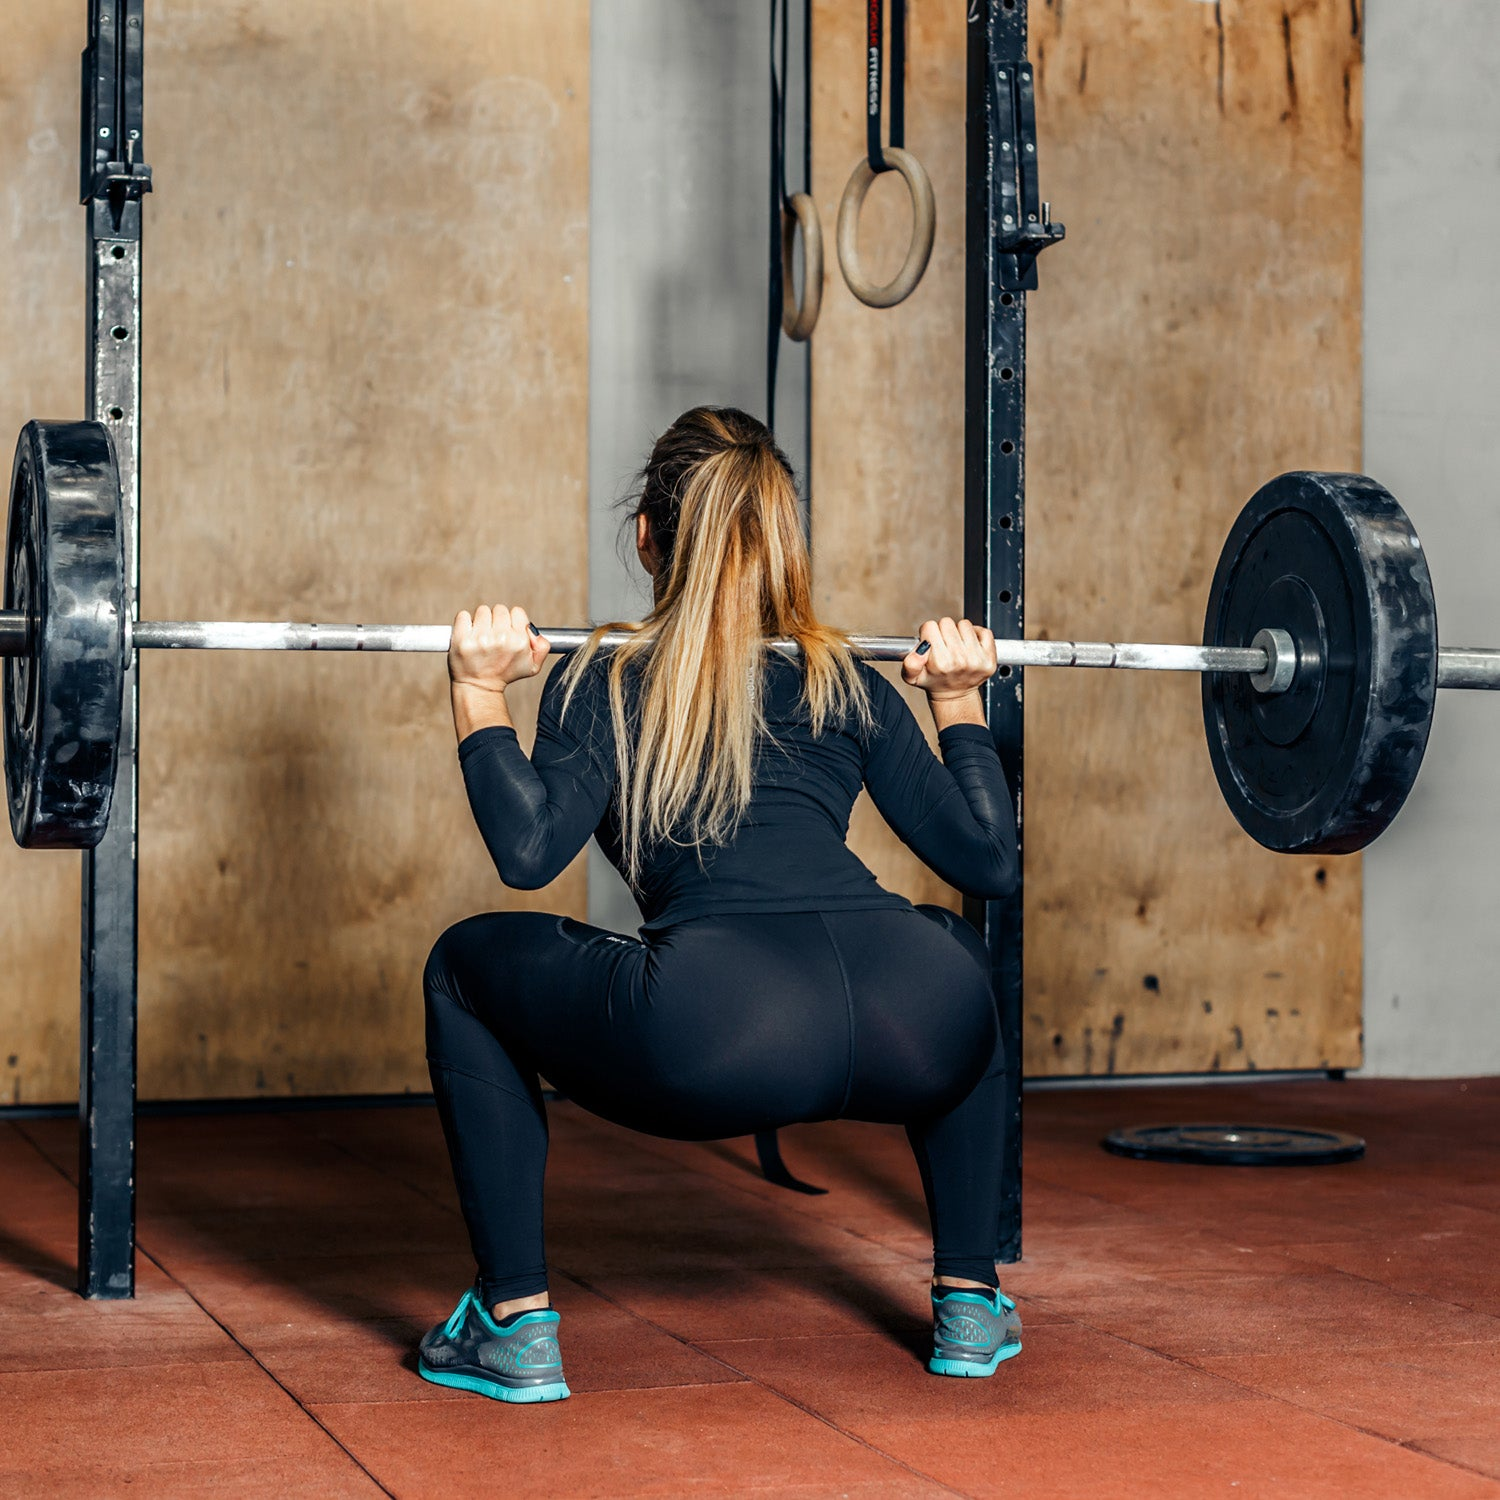 5 Ways To Improve Your Squat